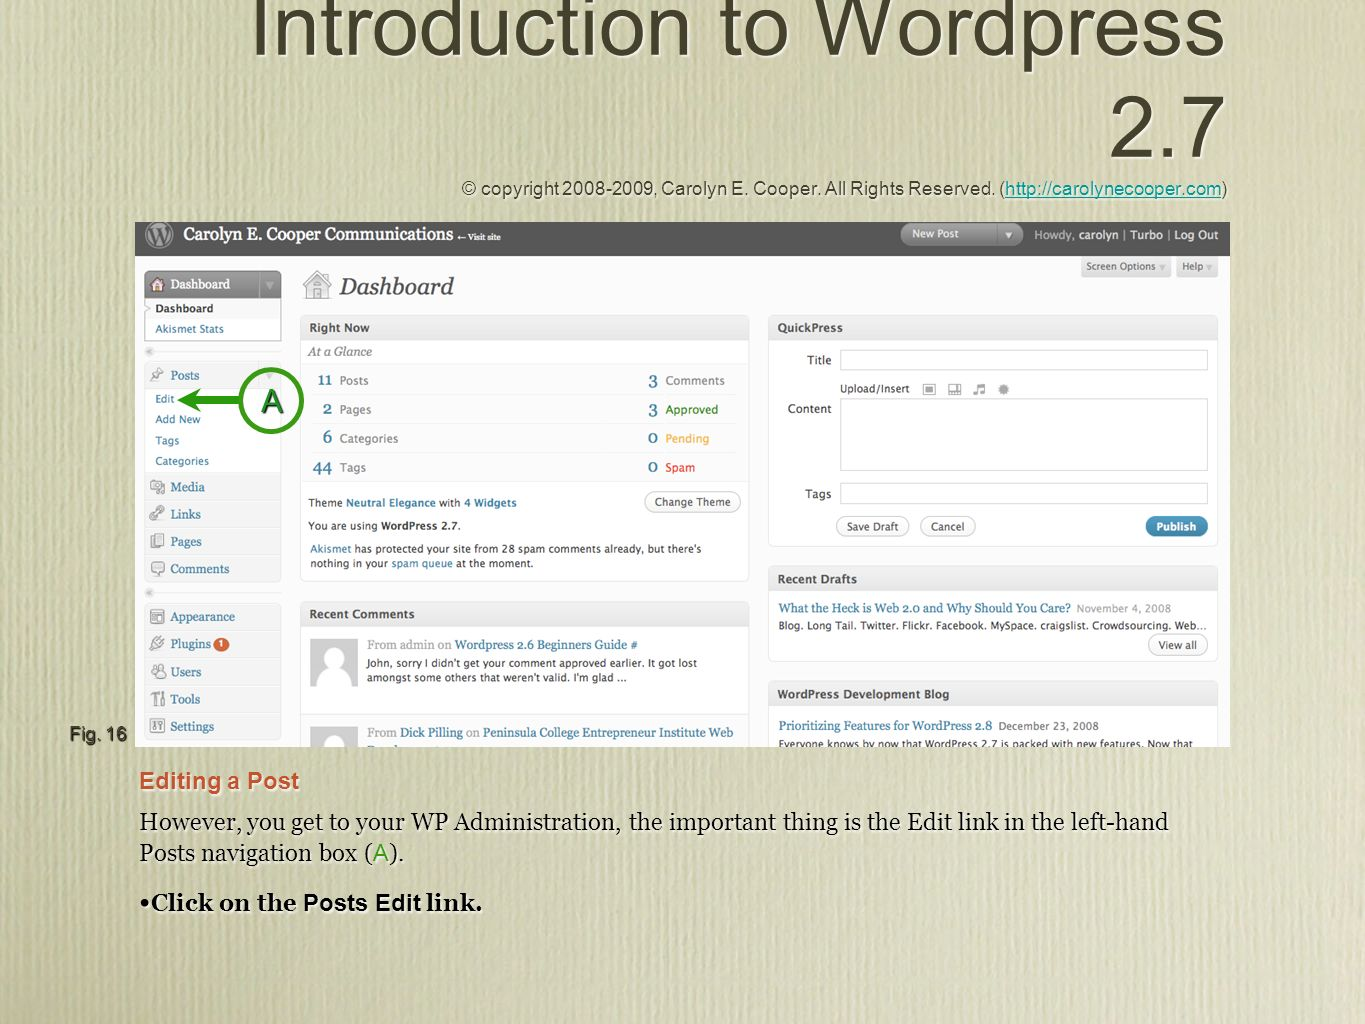 Introduction to Wordpress 2.7 © copyright 2008-2009, Carolyn E. Cooper. All Rights Reserved. (http://carolynecooper.com)http://carolynecooper.com Intr